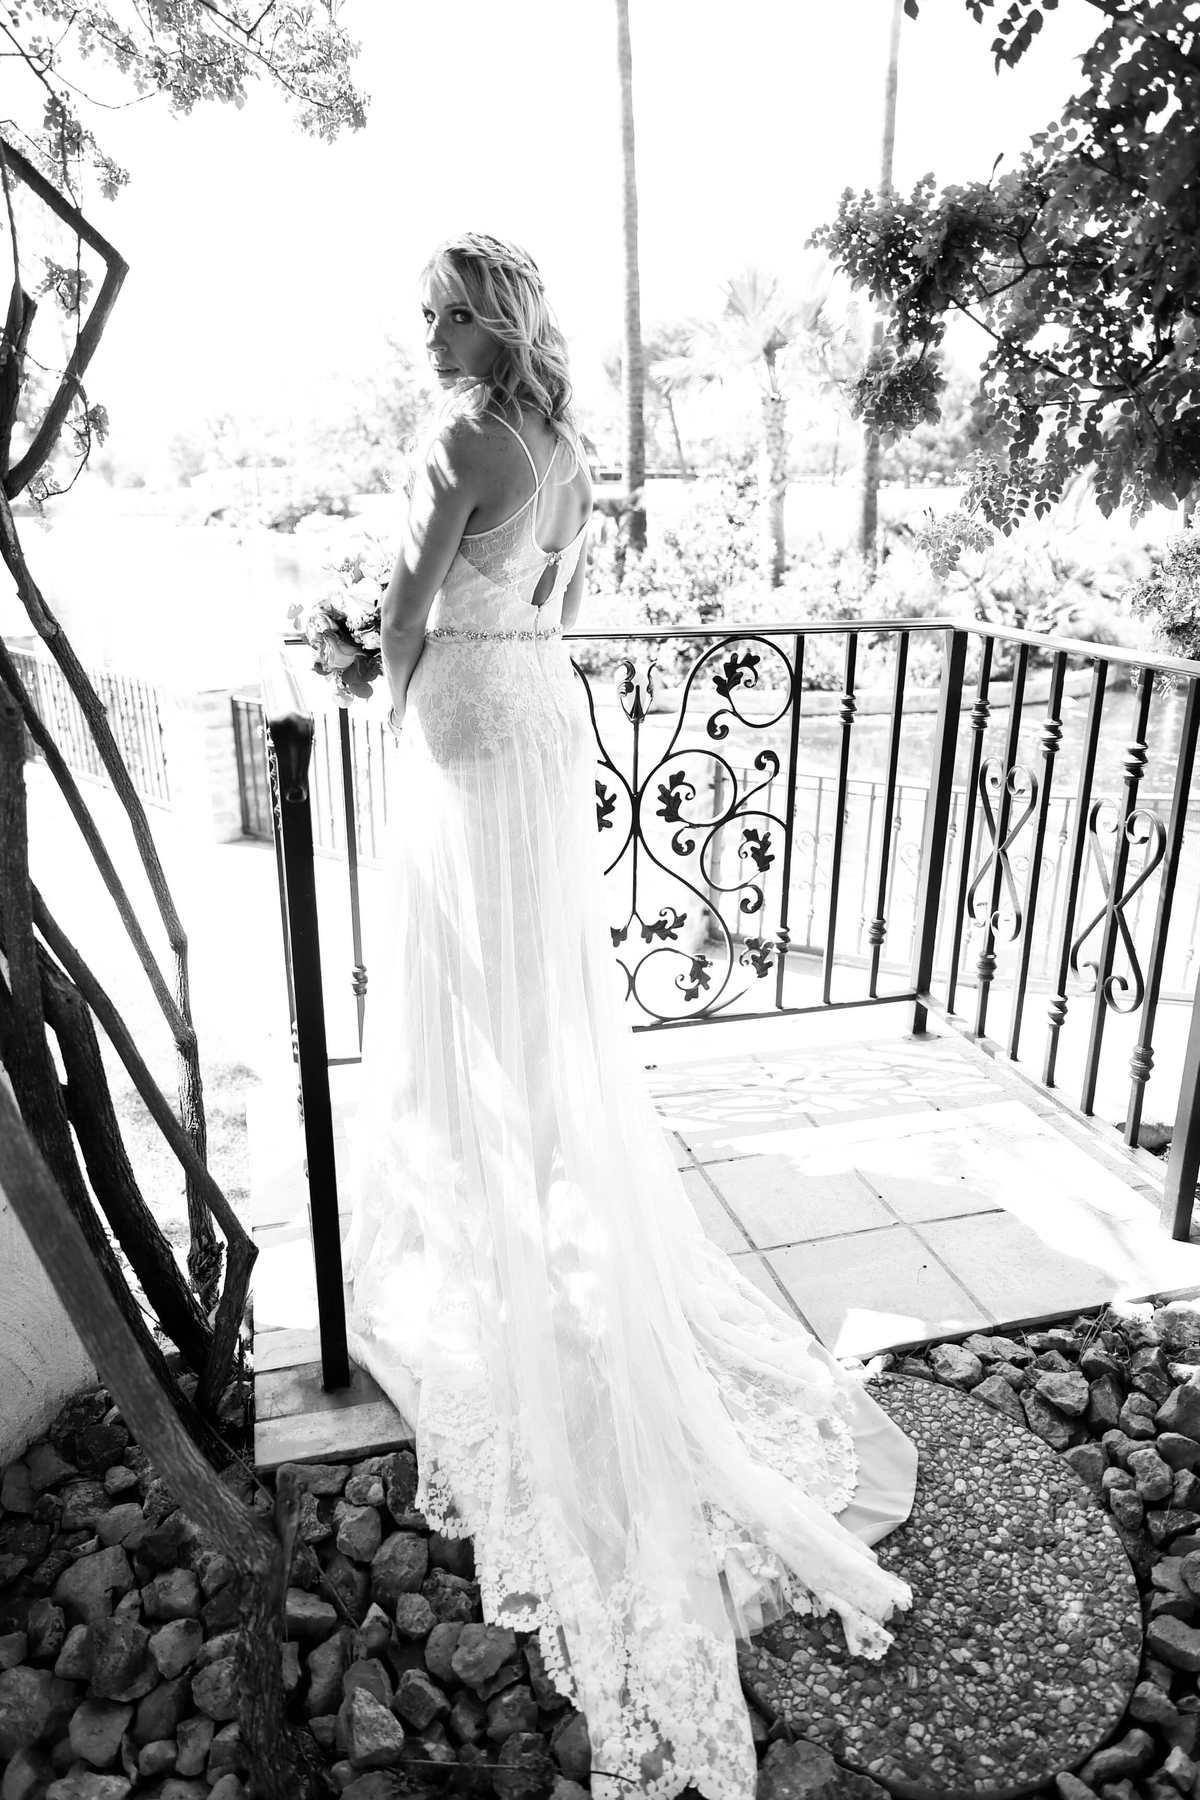 Our beautiful bride Courtney in her amazing wedding dress